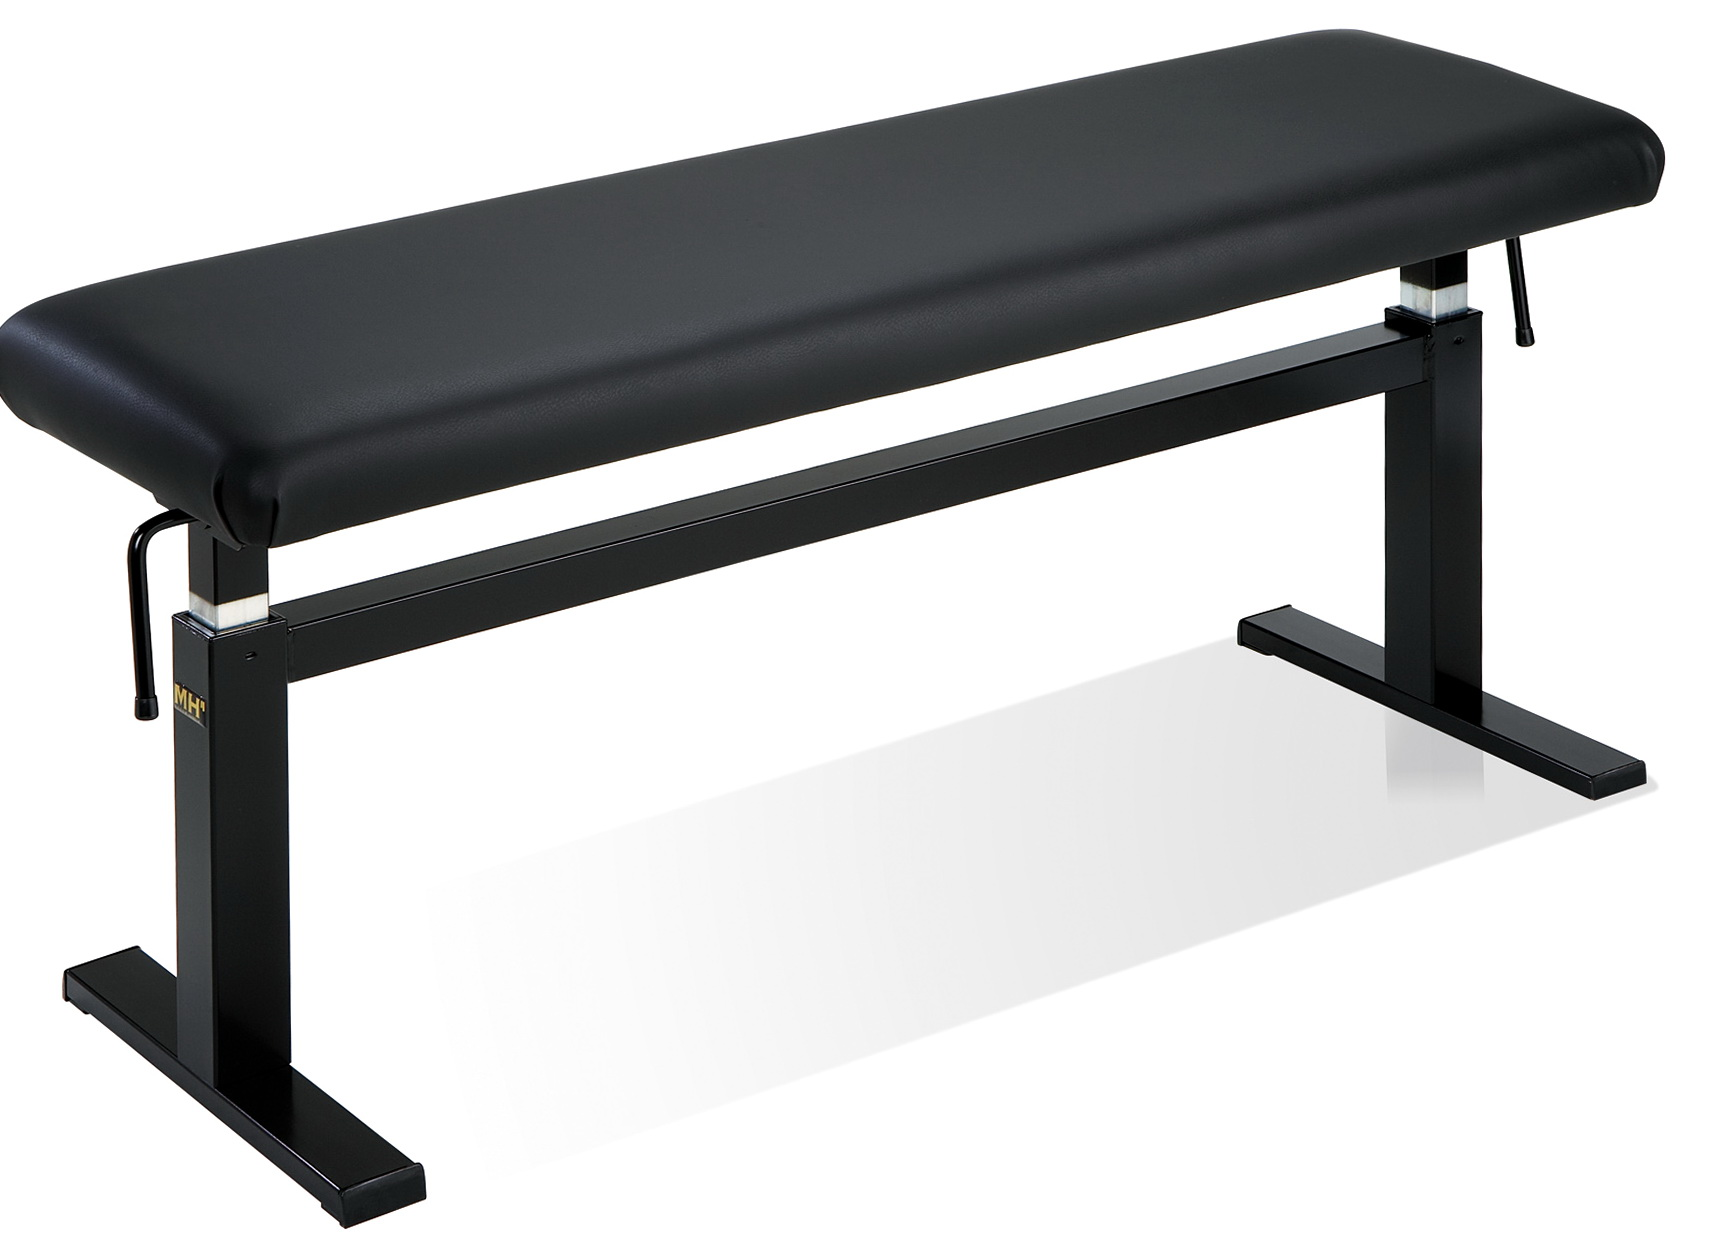 Adjustable Piano Bench Mechanism Home Design Ideas